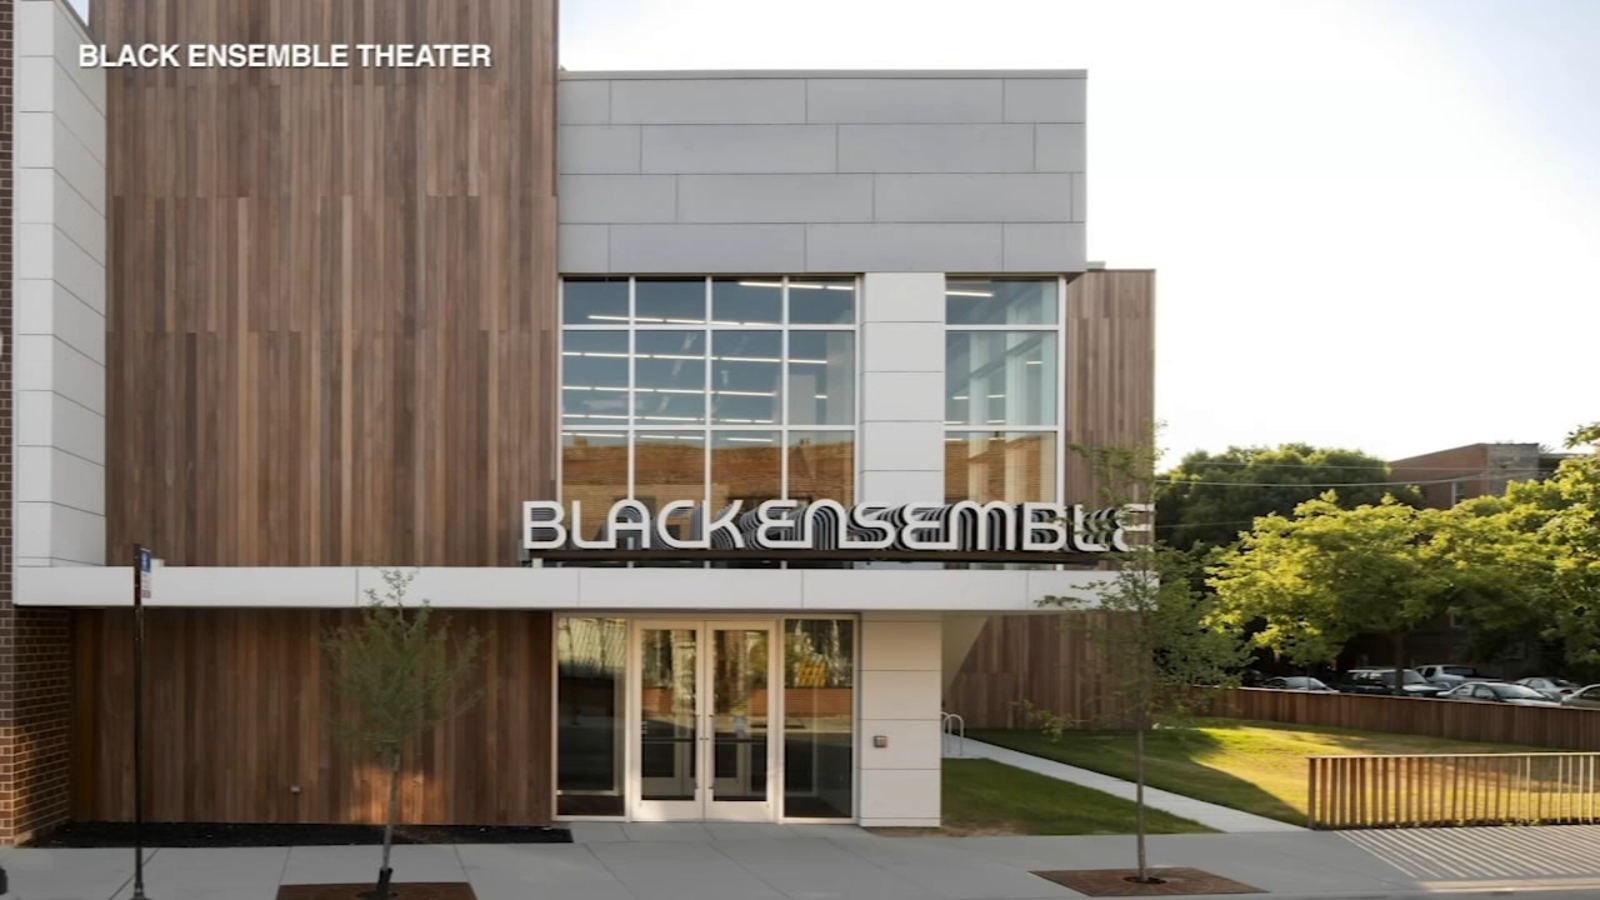 Celebrating Black History Month: The legacy of Chicago's Black Ensemble Theater